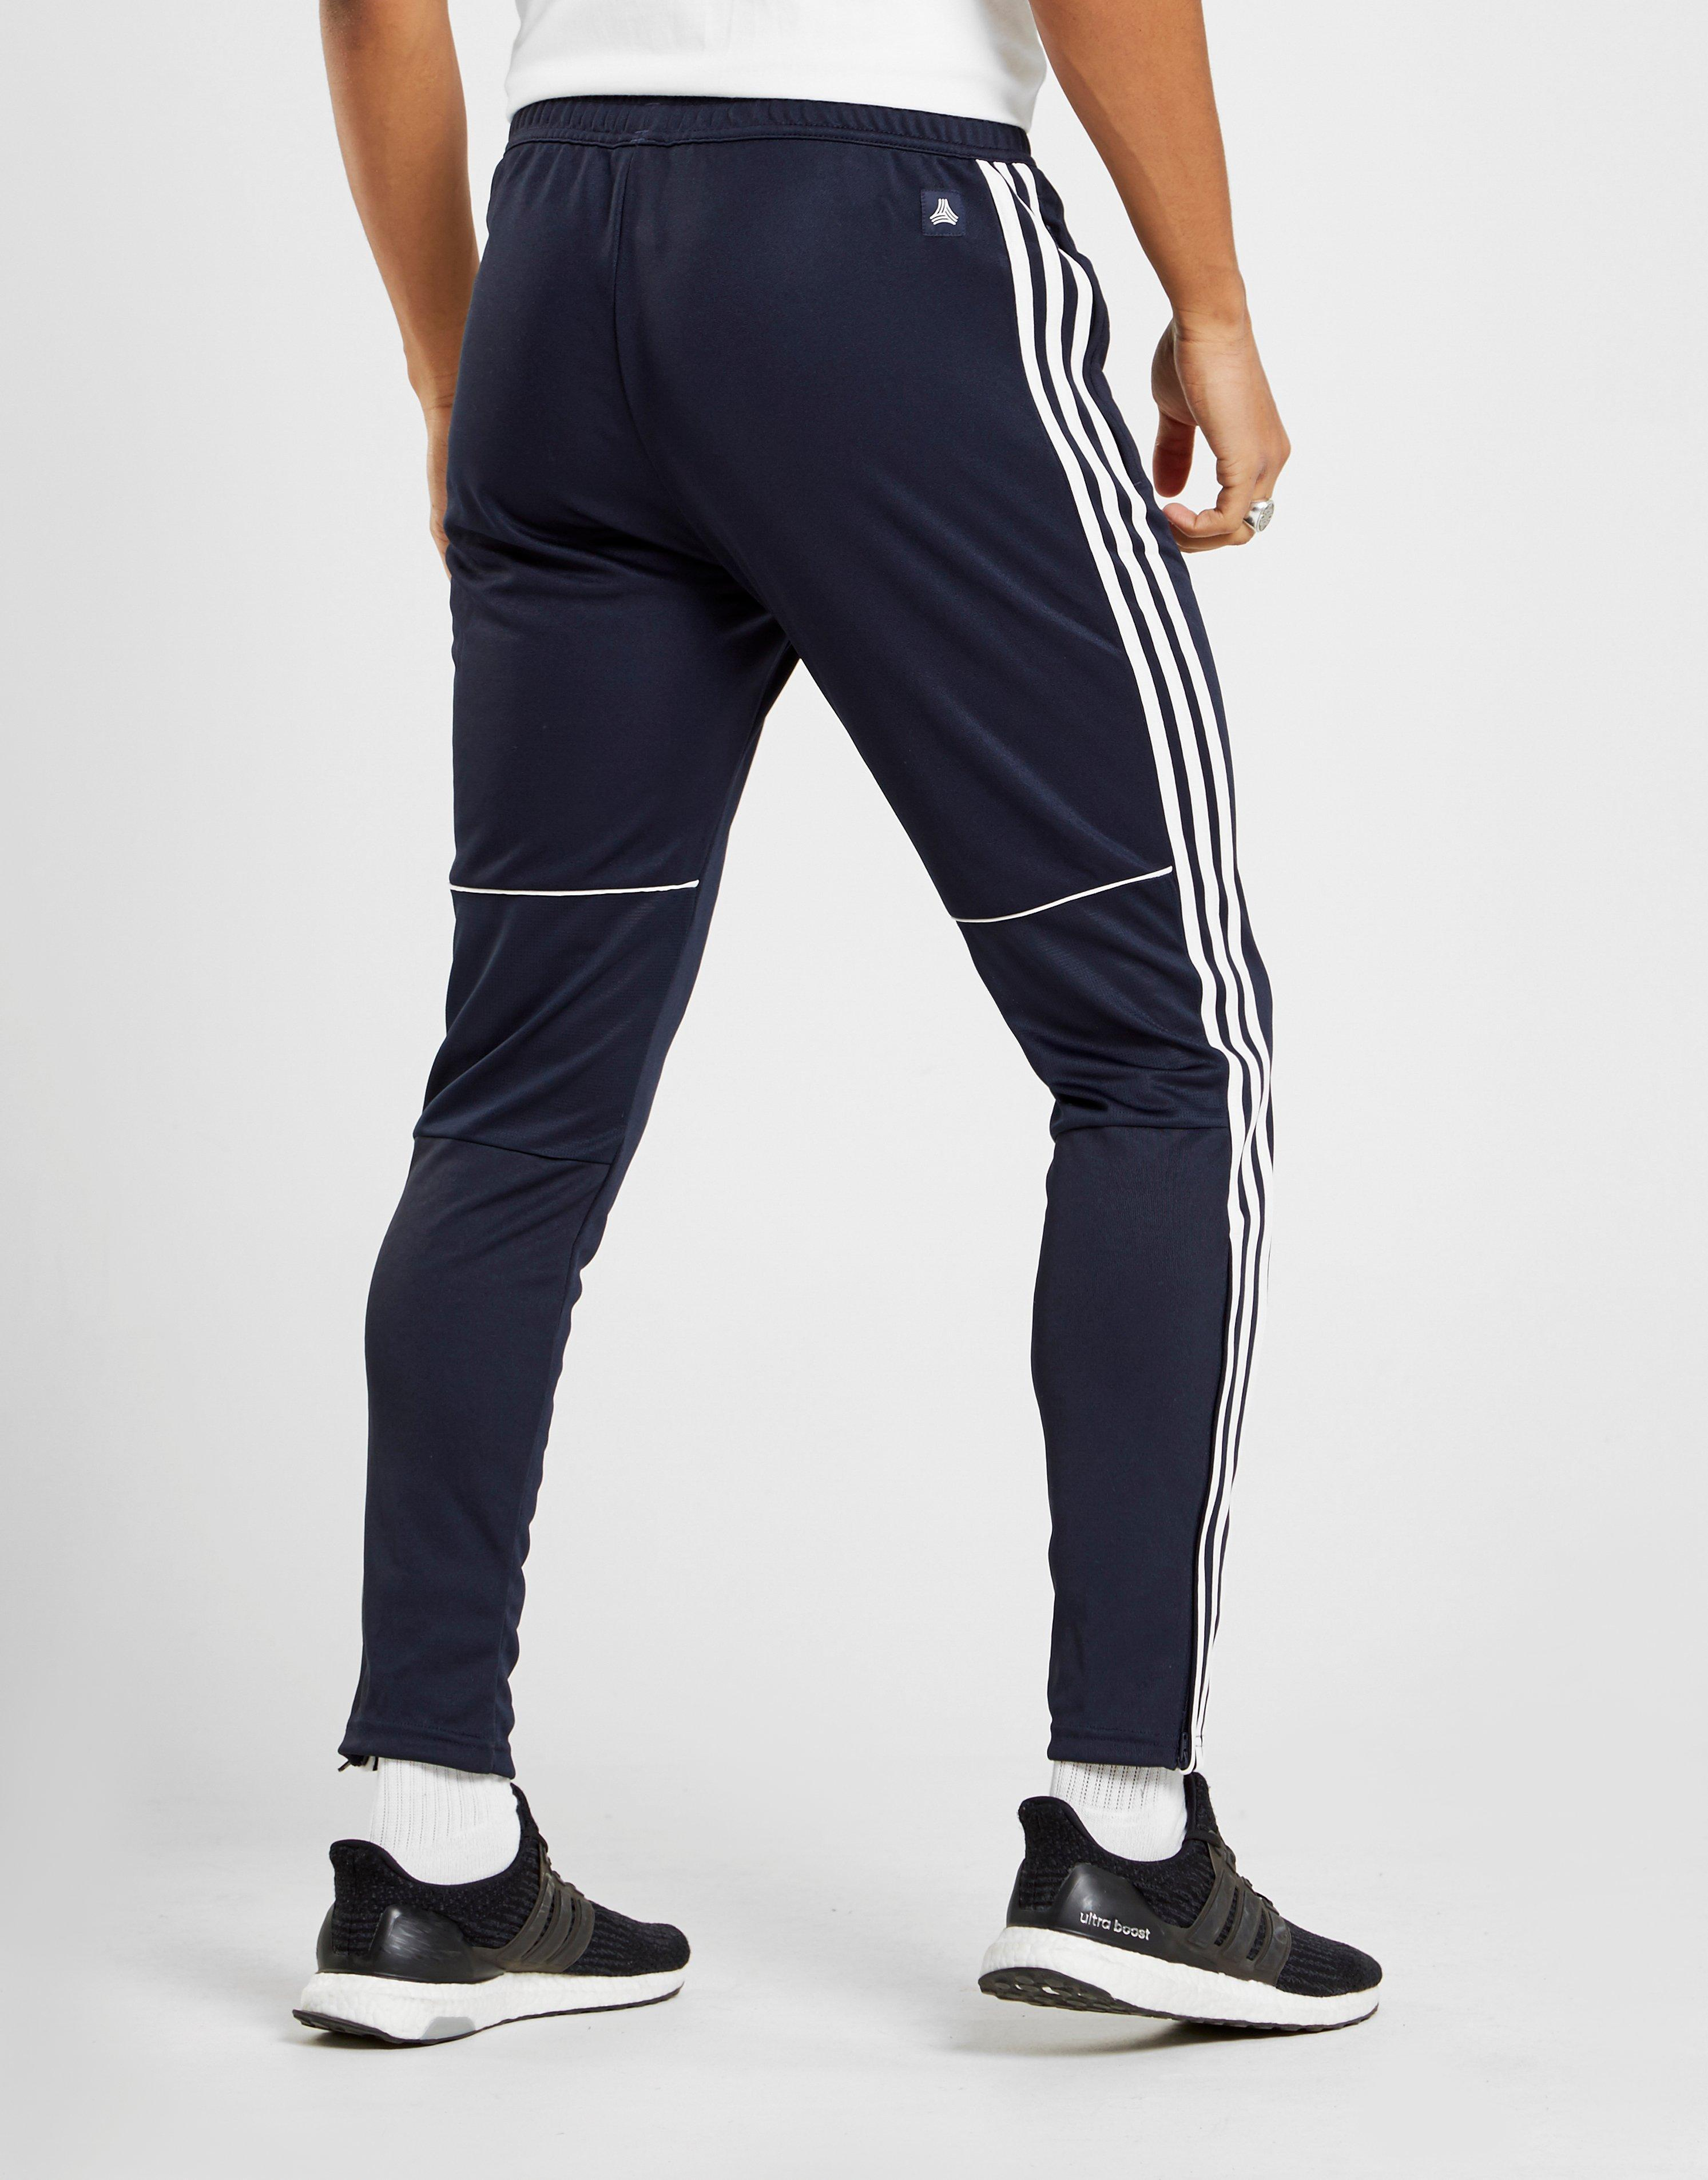 Latest Adidas Navy Tango Fit Pants Slim Clothing Men